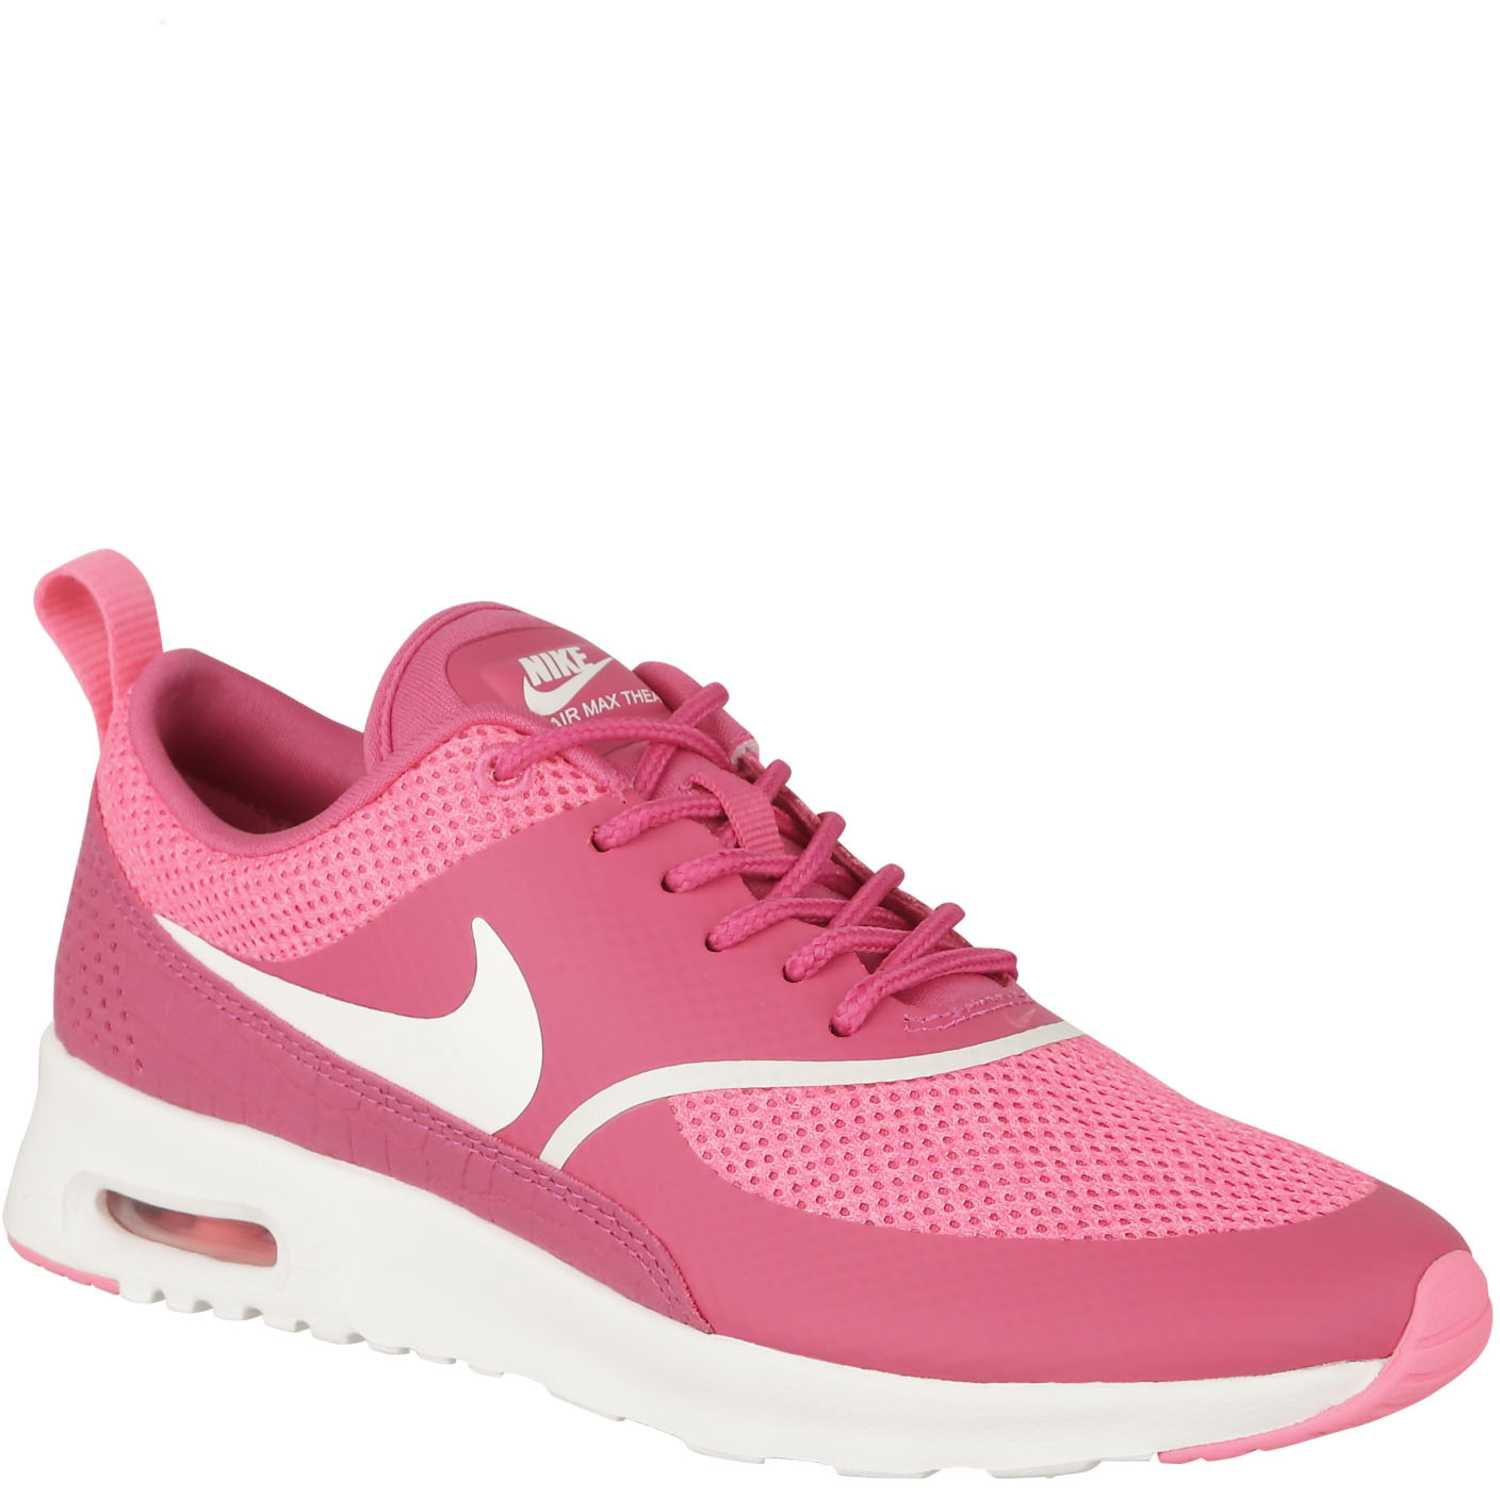 Nike wmns air max thea Rosado / blanco Walking